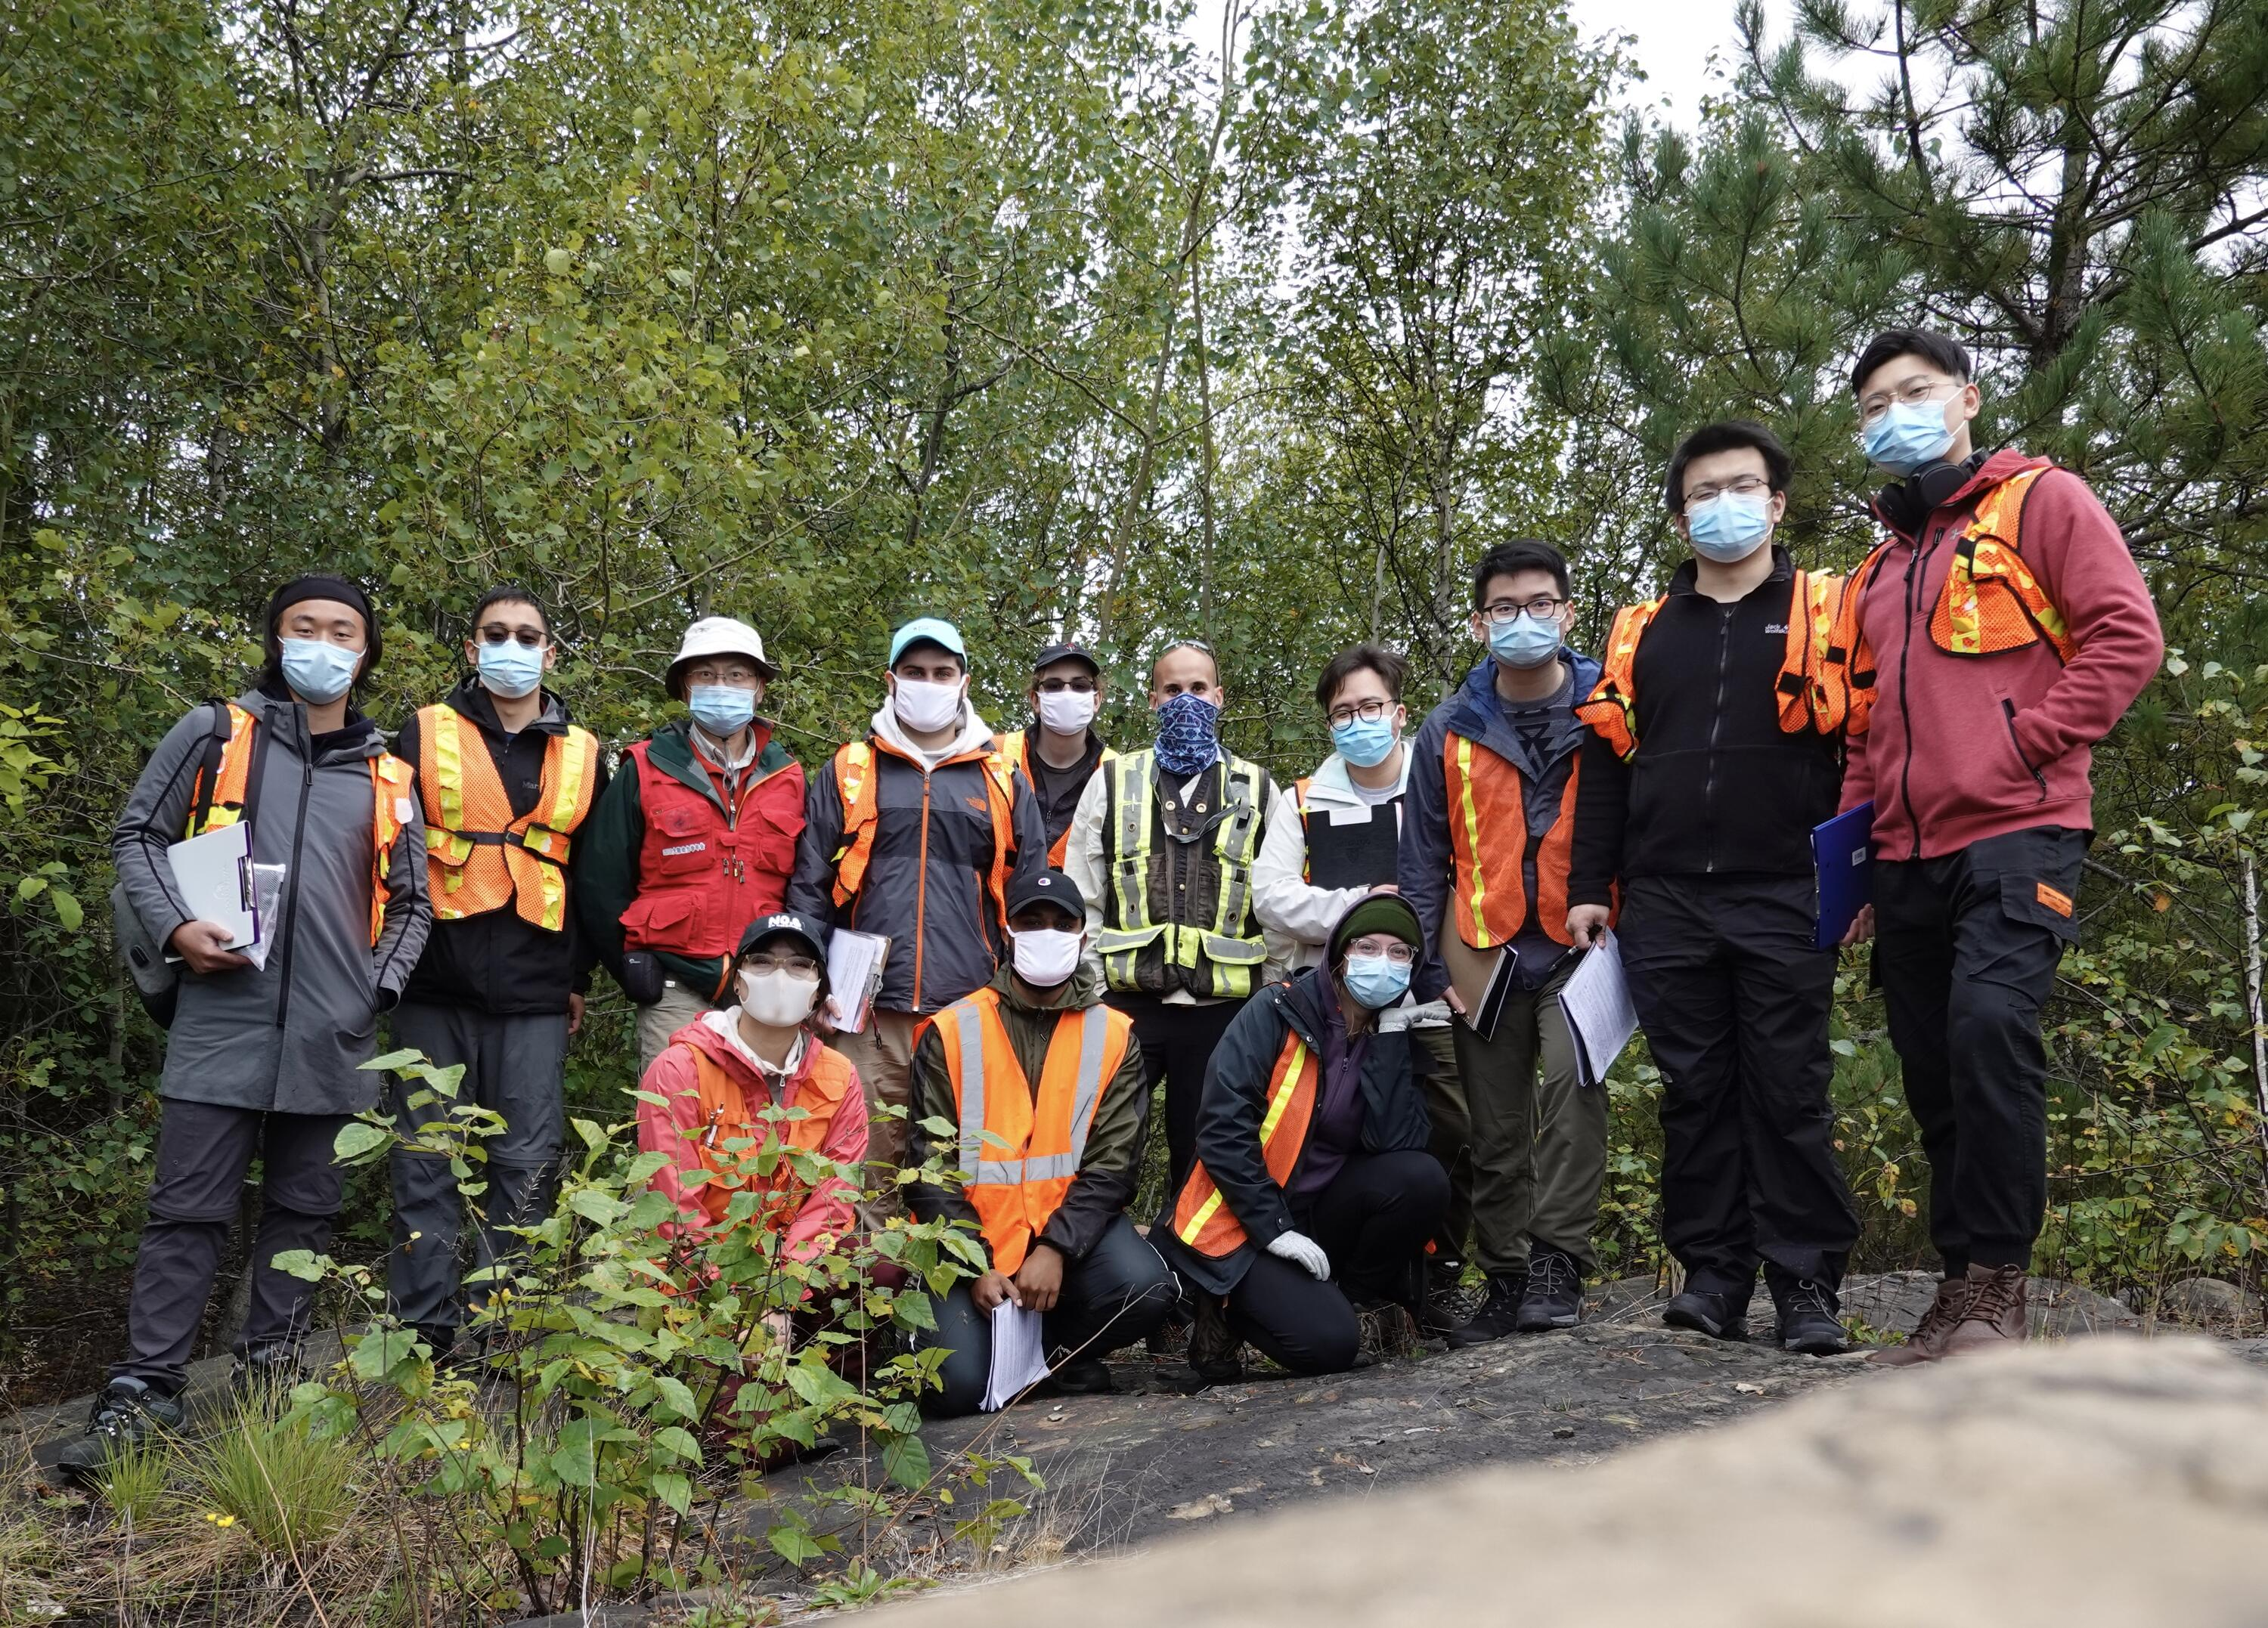 Group of students, TAs, and professor standing on a rock surrounded by trees. All are wearing masks